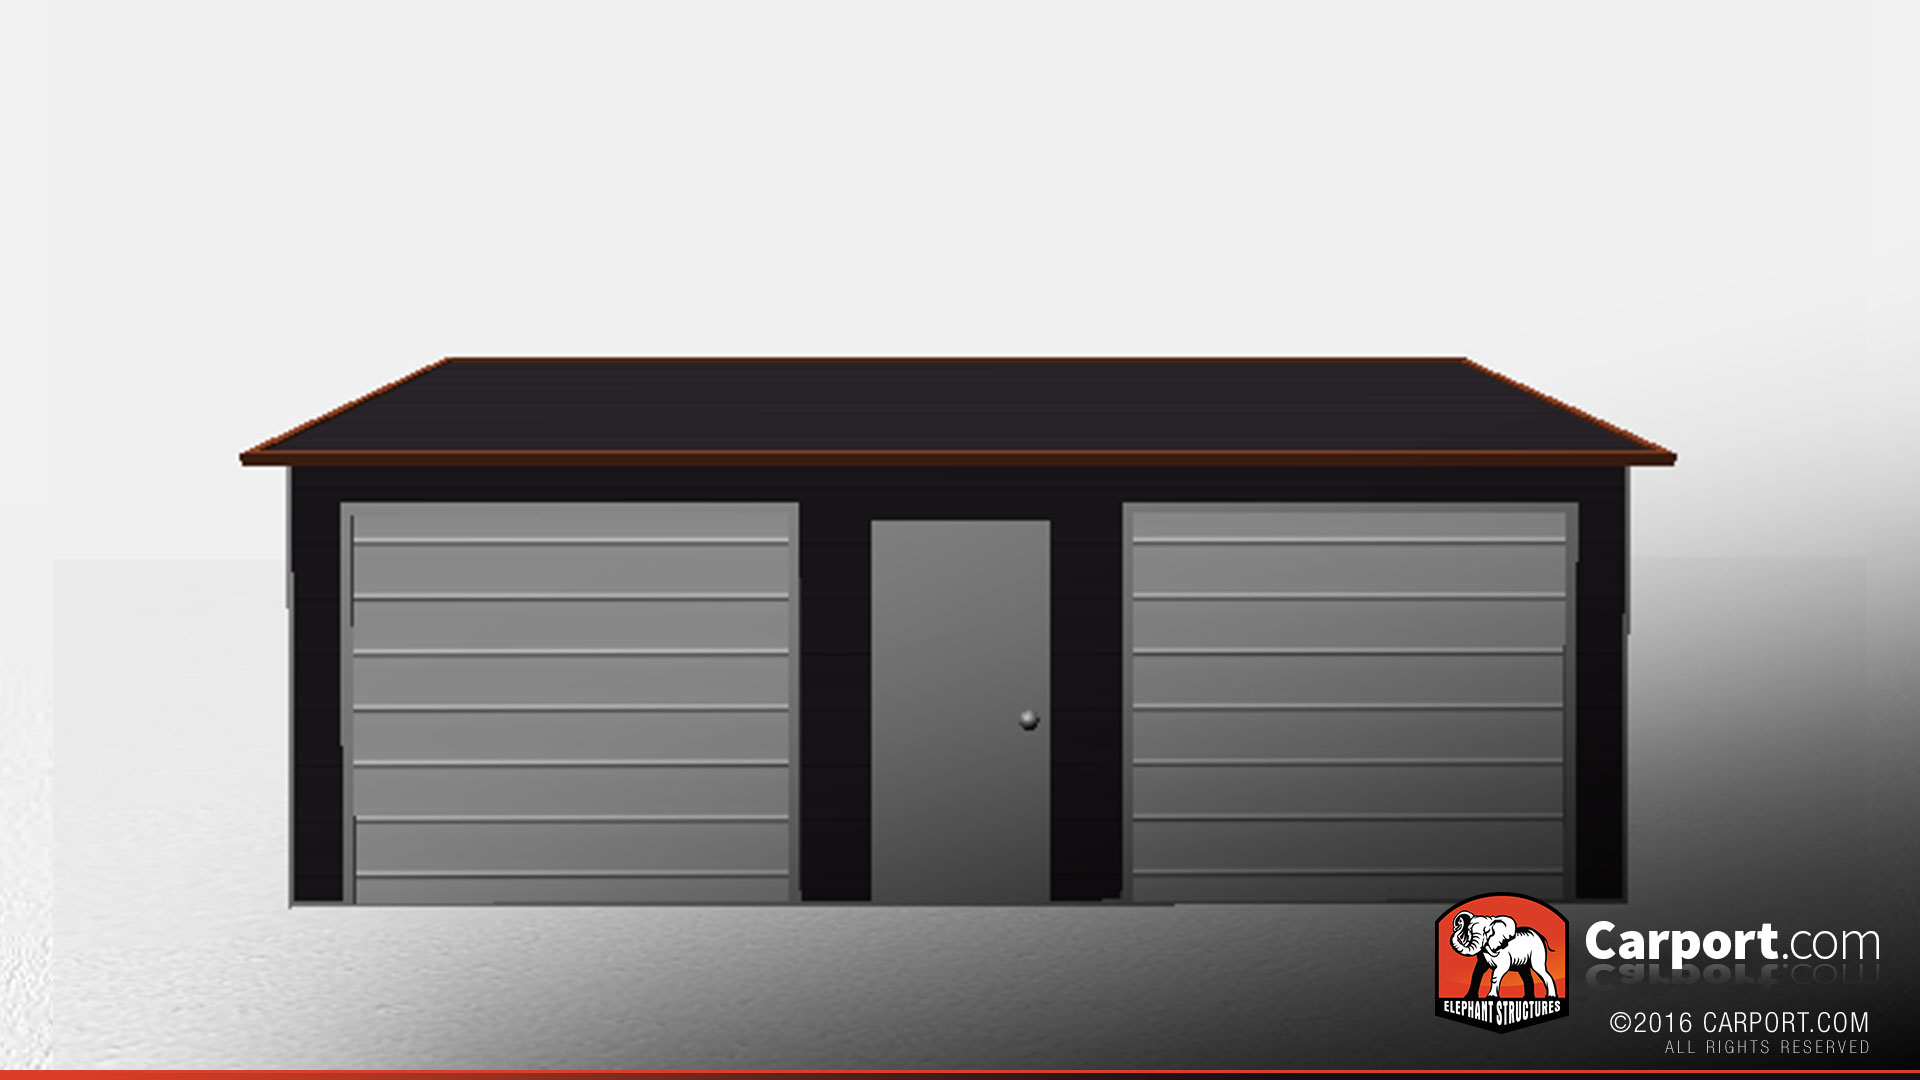 18 39 x 24 39 two car metal garage with boxed eave roof for Carport shop